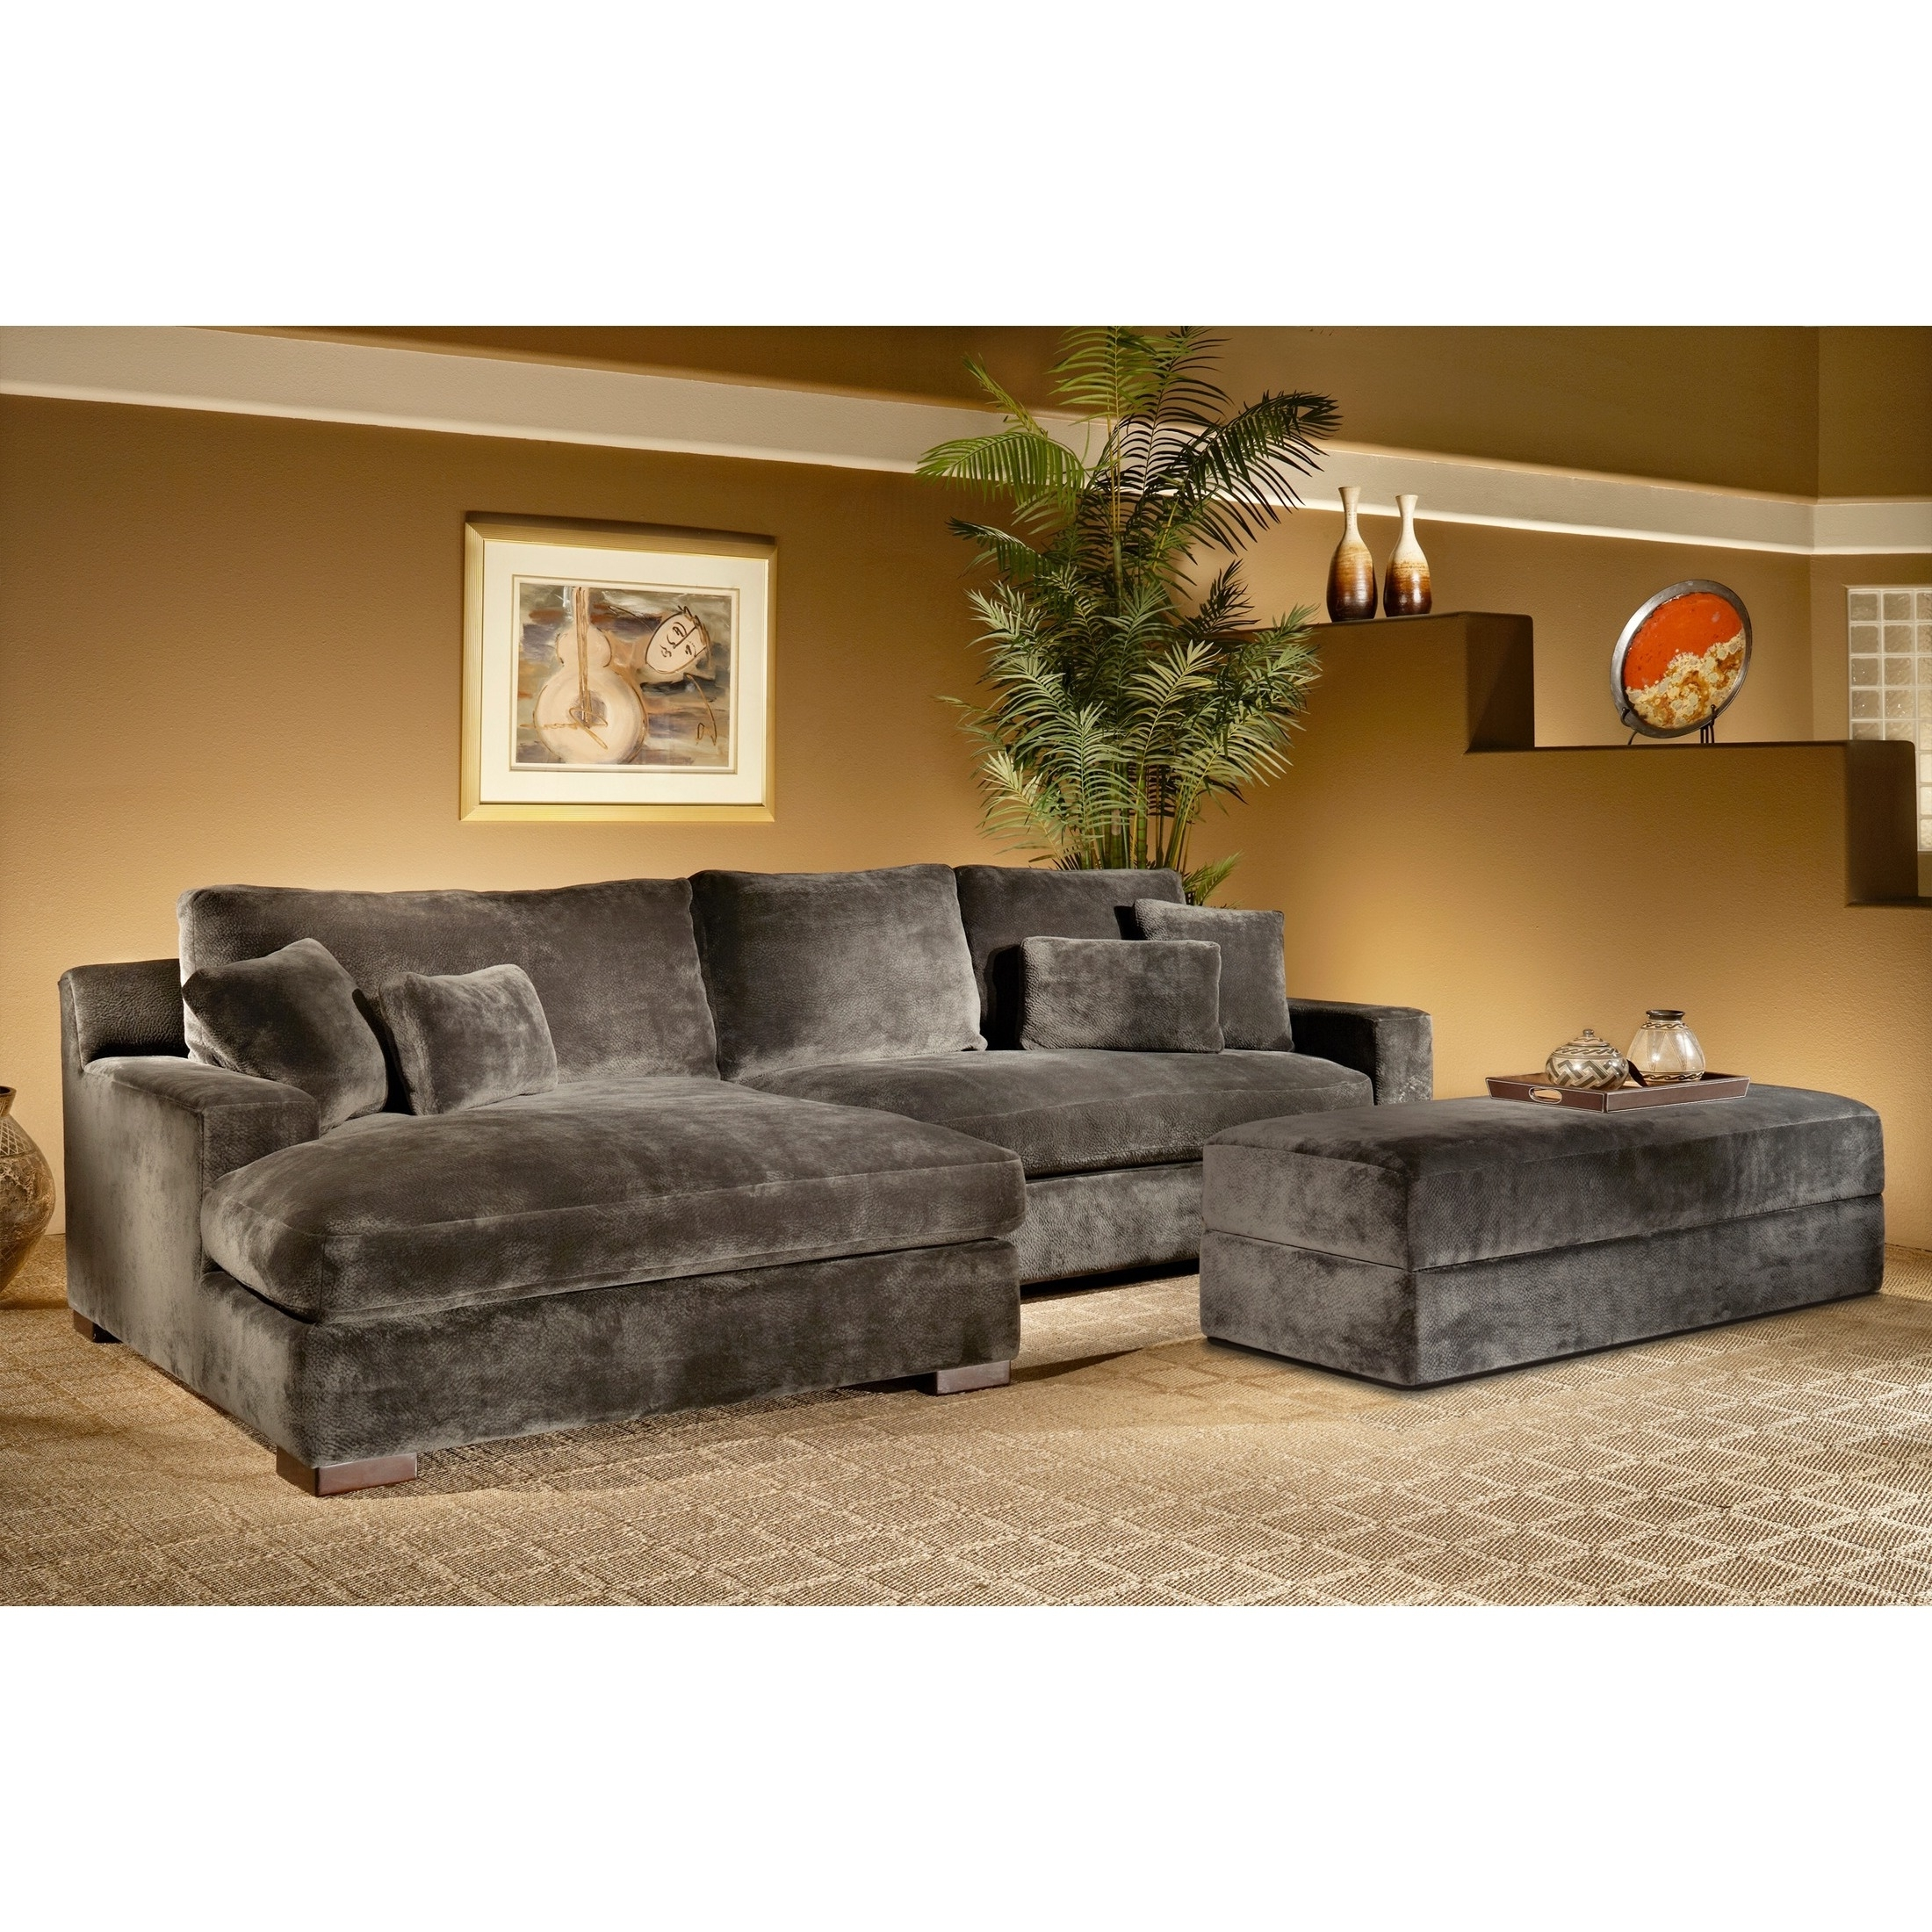 Jeromeu0027s Sectional Sofas Throughout Most Up To Date The Doris 3 Piece Smoke  Sectional Sofa With